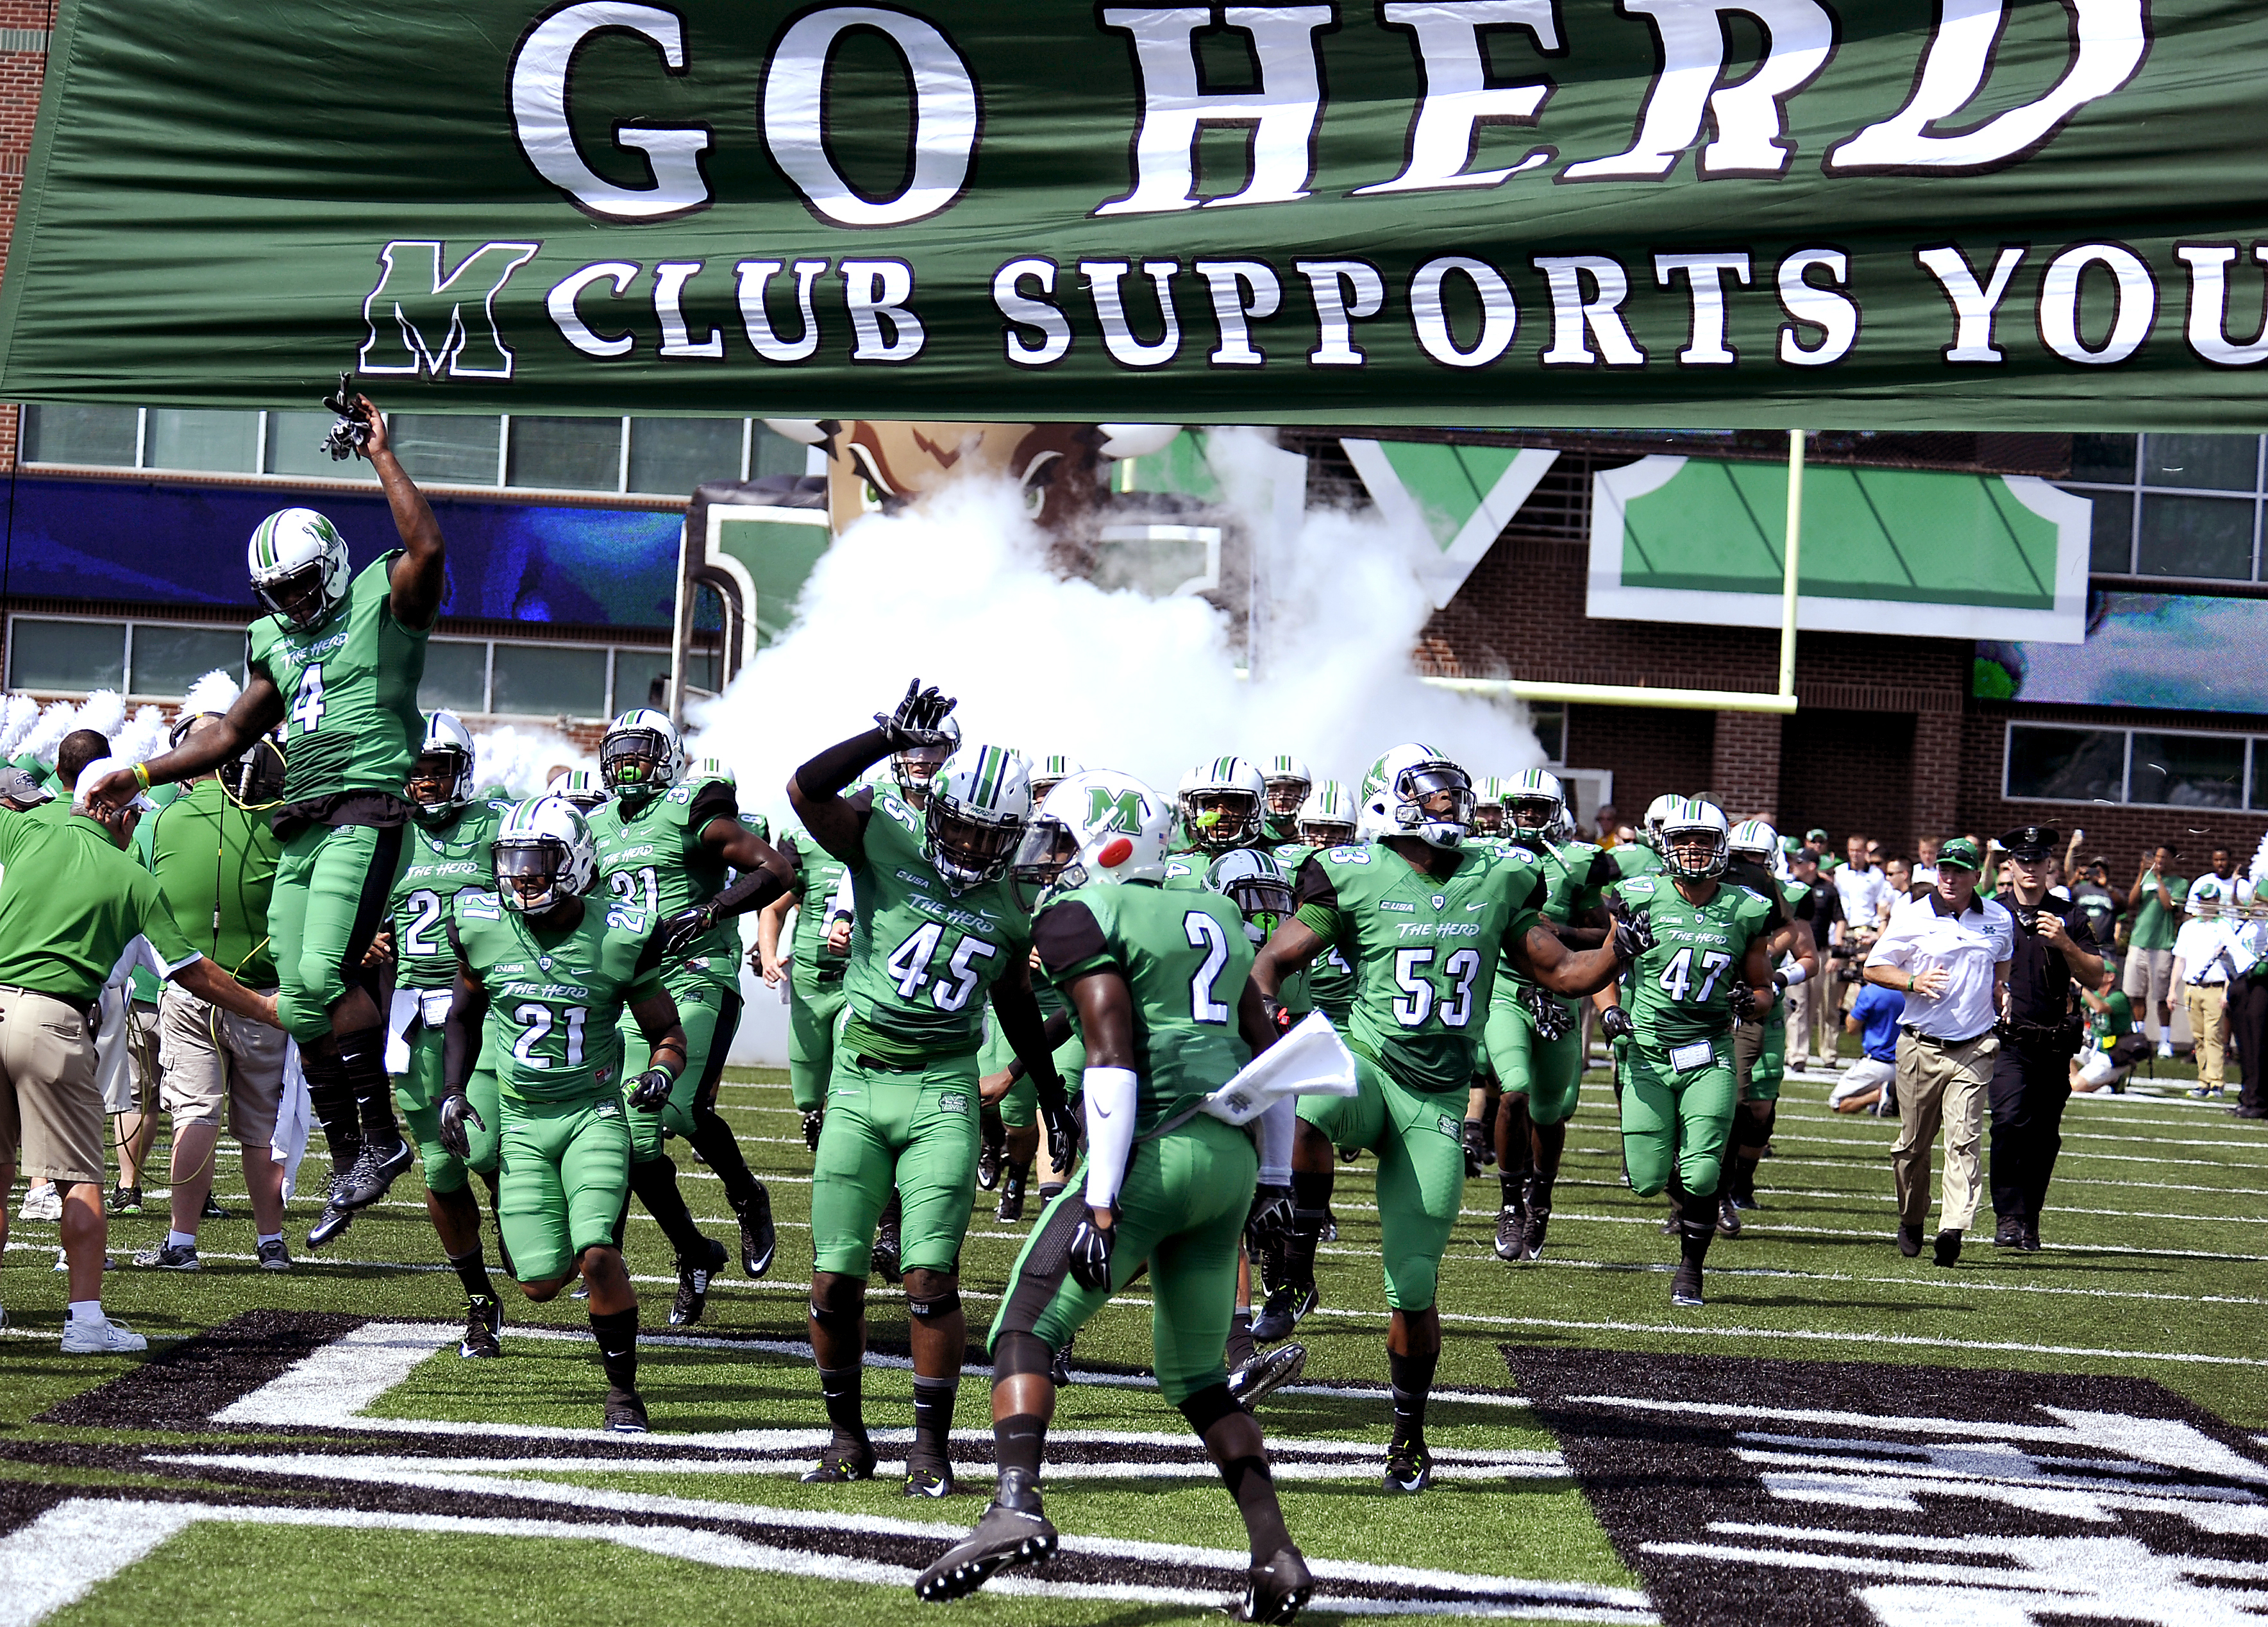 Marshall Thundering  Herd Football take the filed for the 2015- 2016 season opening game with against Purdue during an NCAA football game in Huntington, W.Va., Sunday, Sept. 6, 2015. (AP Photo/Chris Tilley)